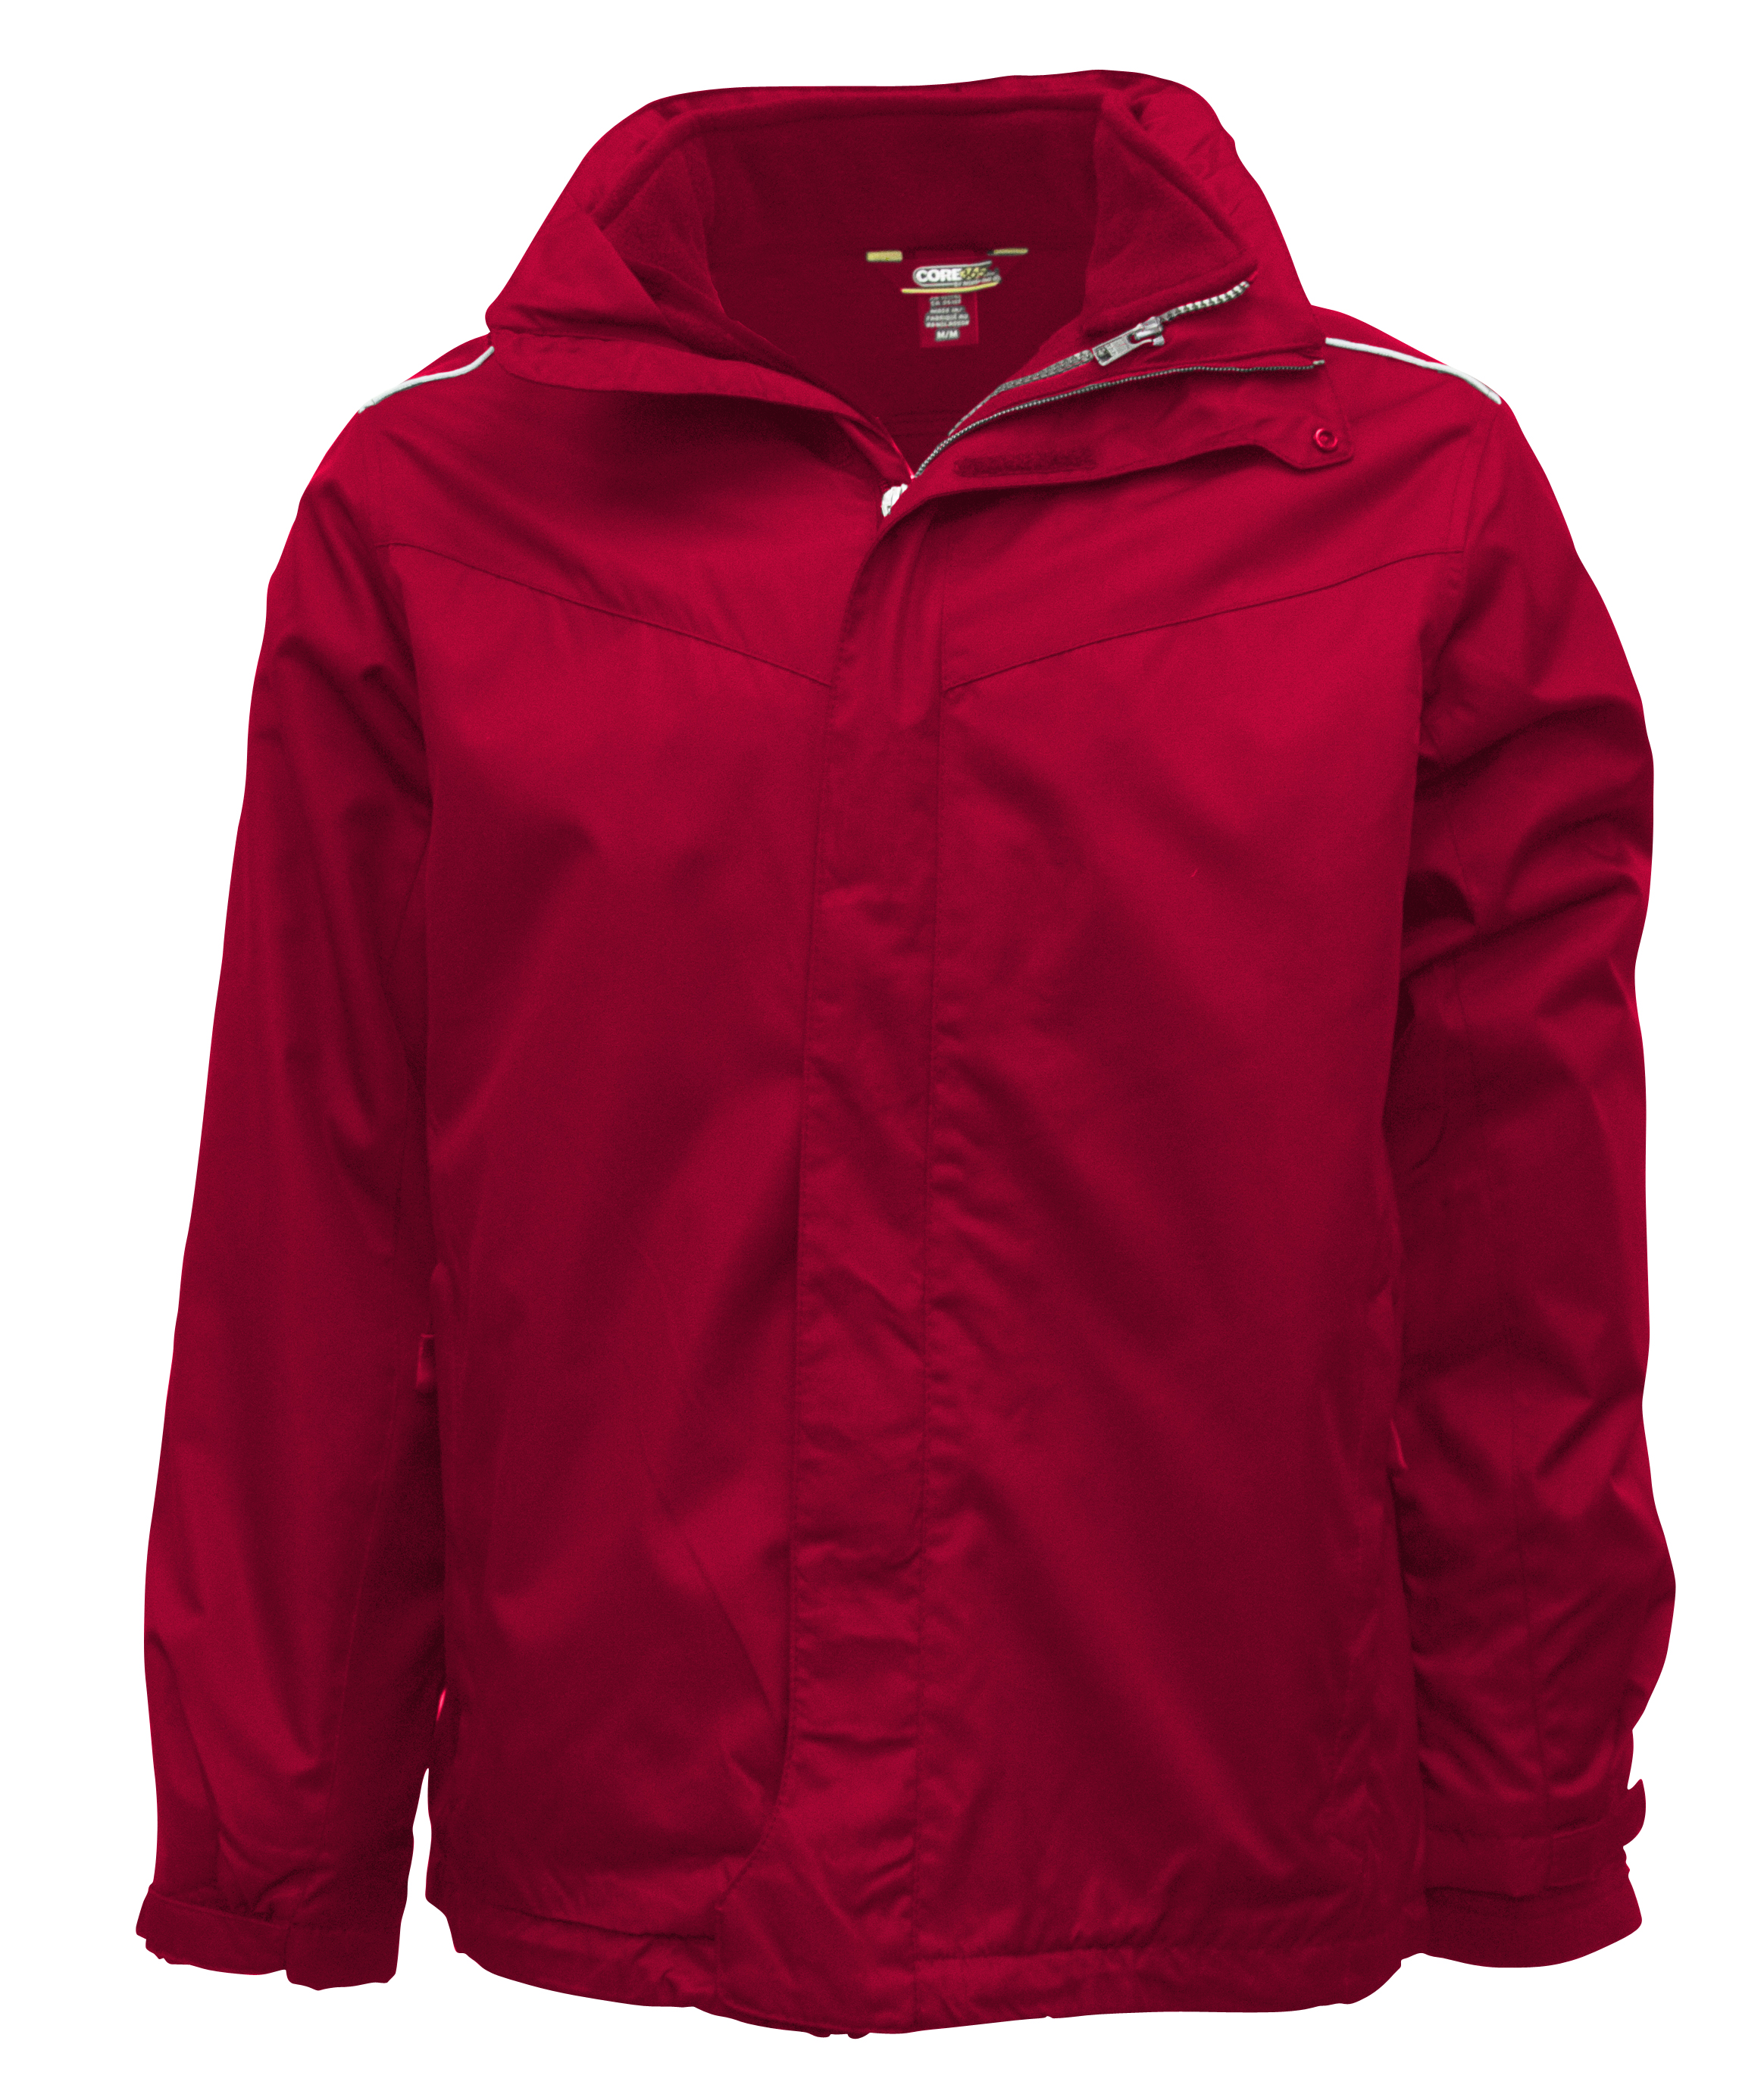 Core 365 3-in-1 Jacket with Fleece Liner